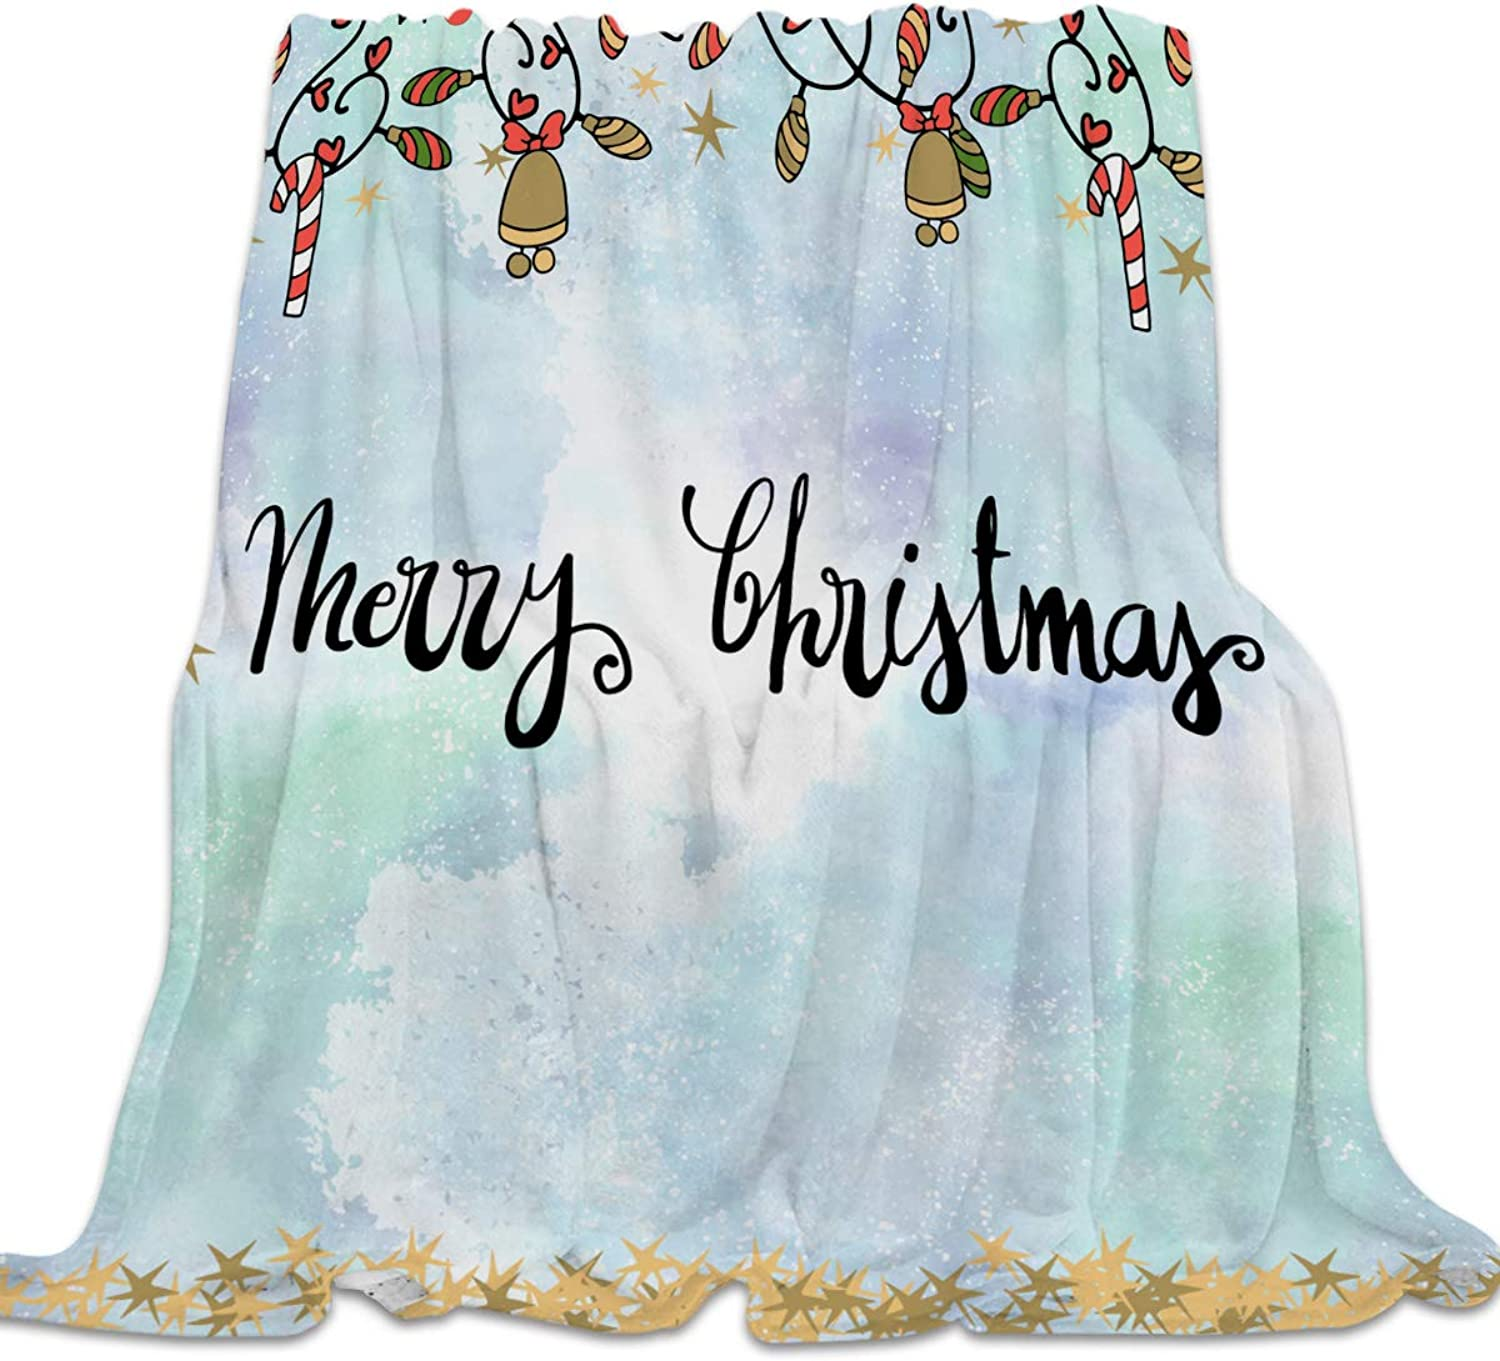 YEHO Art Gallery Flannel Fleece Bed Blanket Super Soft Cozy ThrowBlankets for Kids Girls Boys,Lightweight Blankets for Bed Sofa Couch Chair Day Nap,Merry Christmas Jingling Bell Pattern,49x59inch